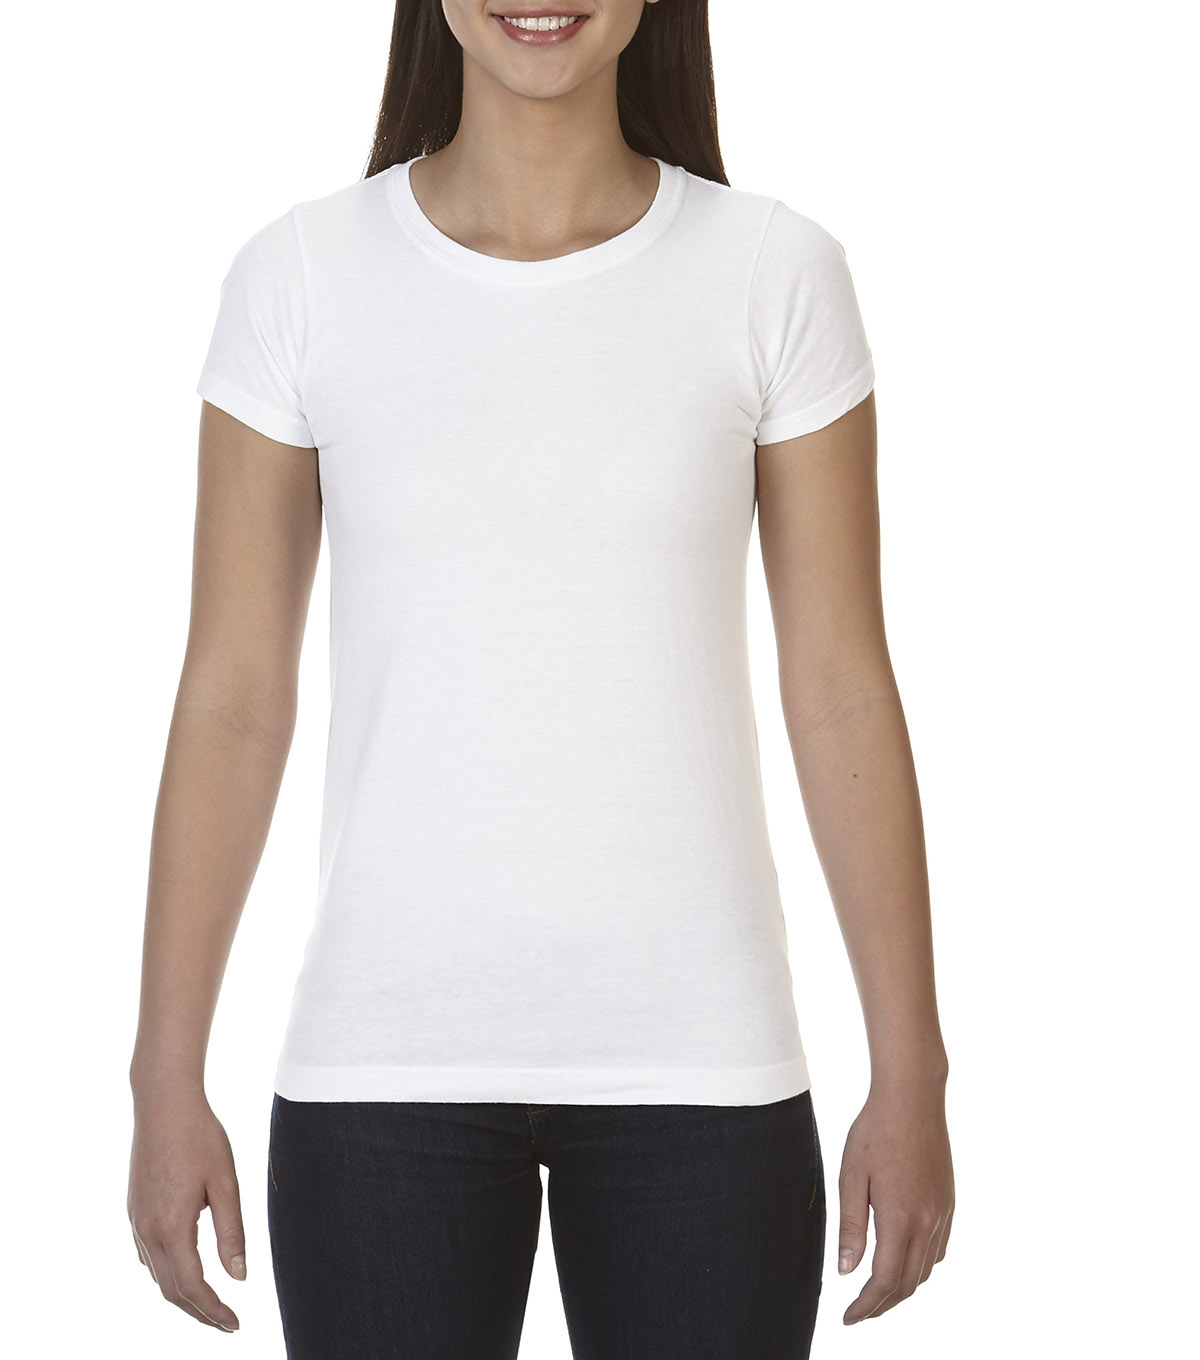 Comfort Colors Large Ladies T-Shirt, White